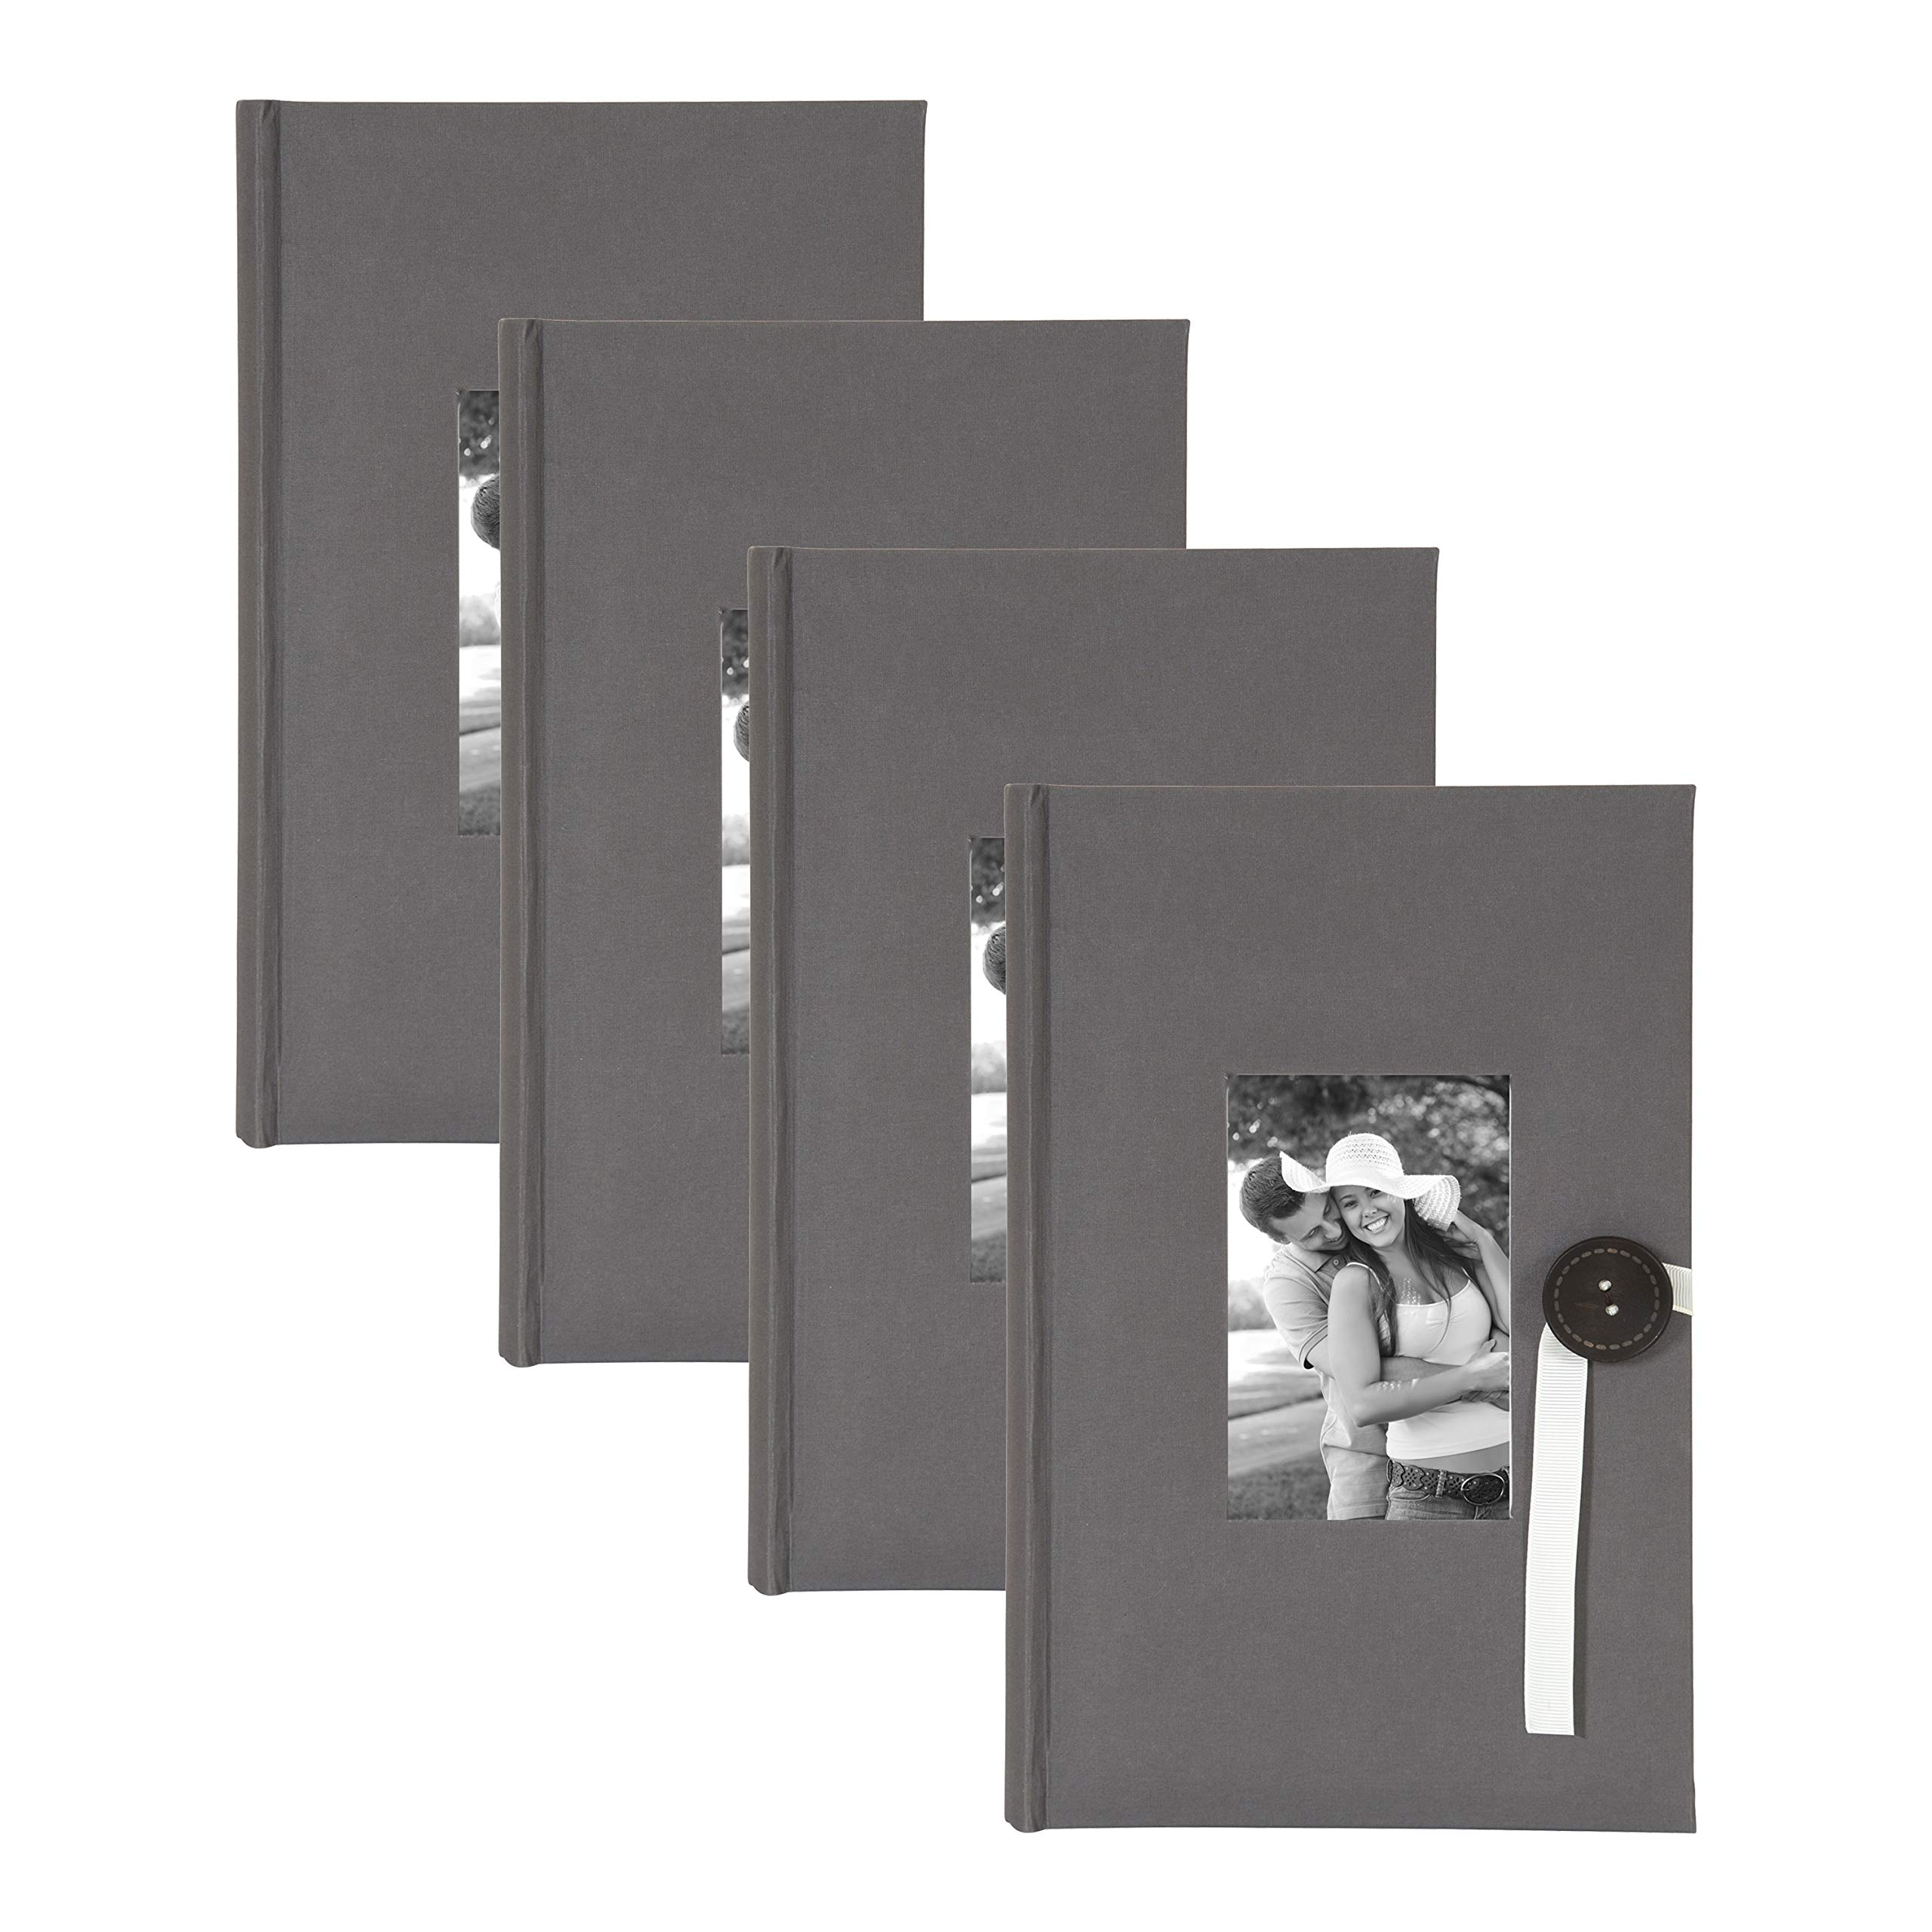 DesignOvation Kim Gray Fabric Photo Album with Ribbon and Button Closure, Holds 300 4x6 Photos, Set of 4 by DesignOvation